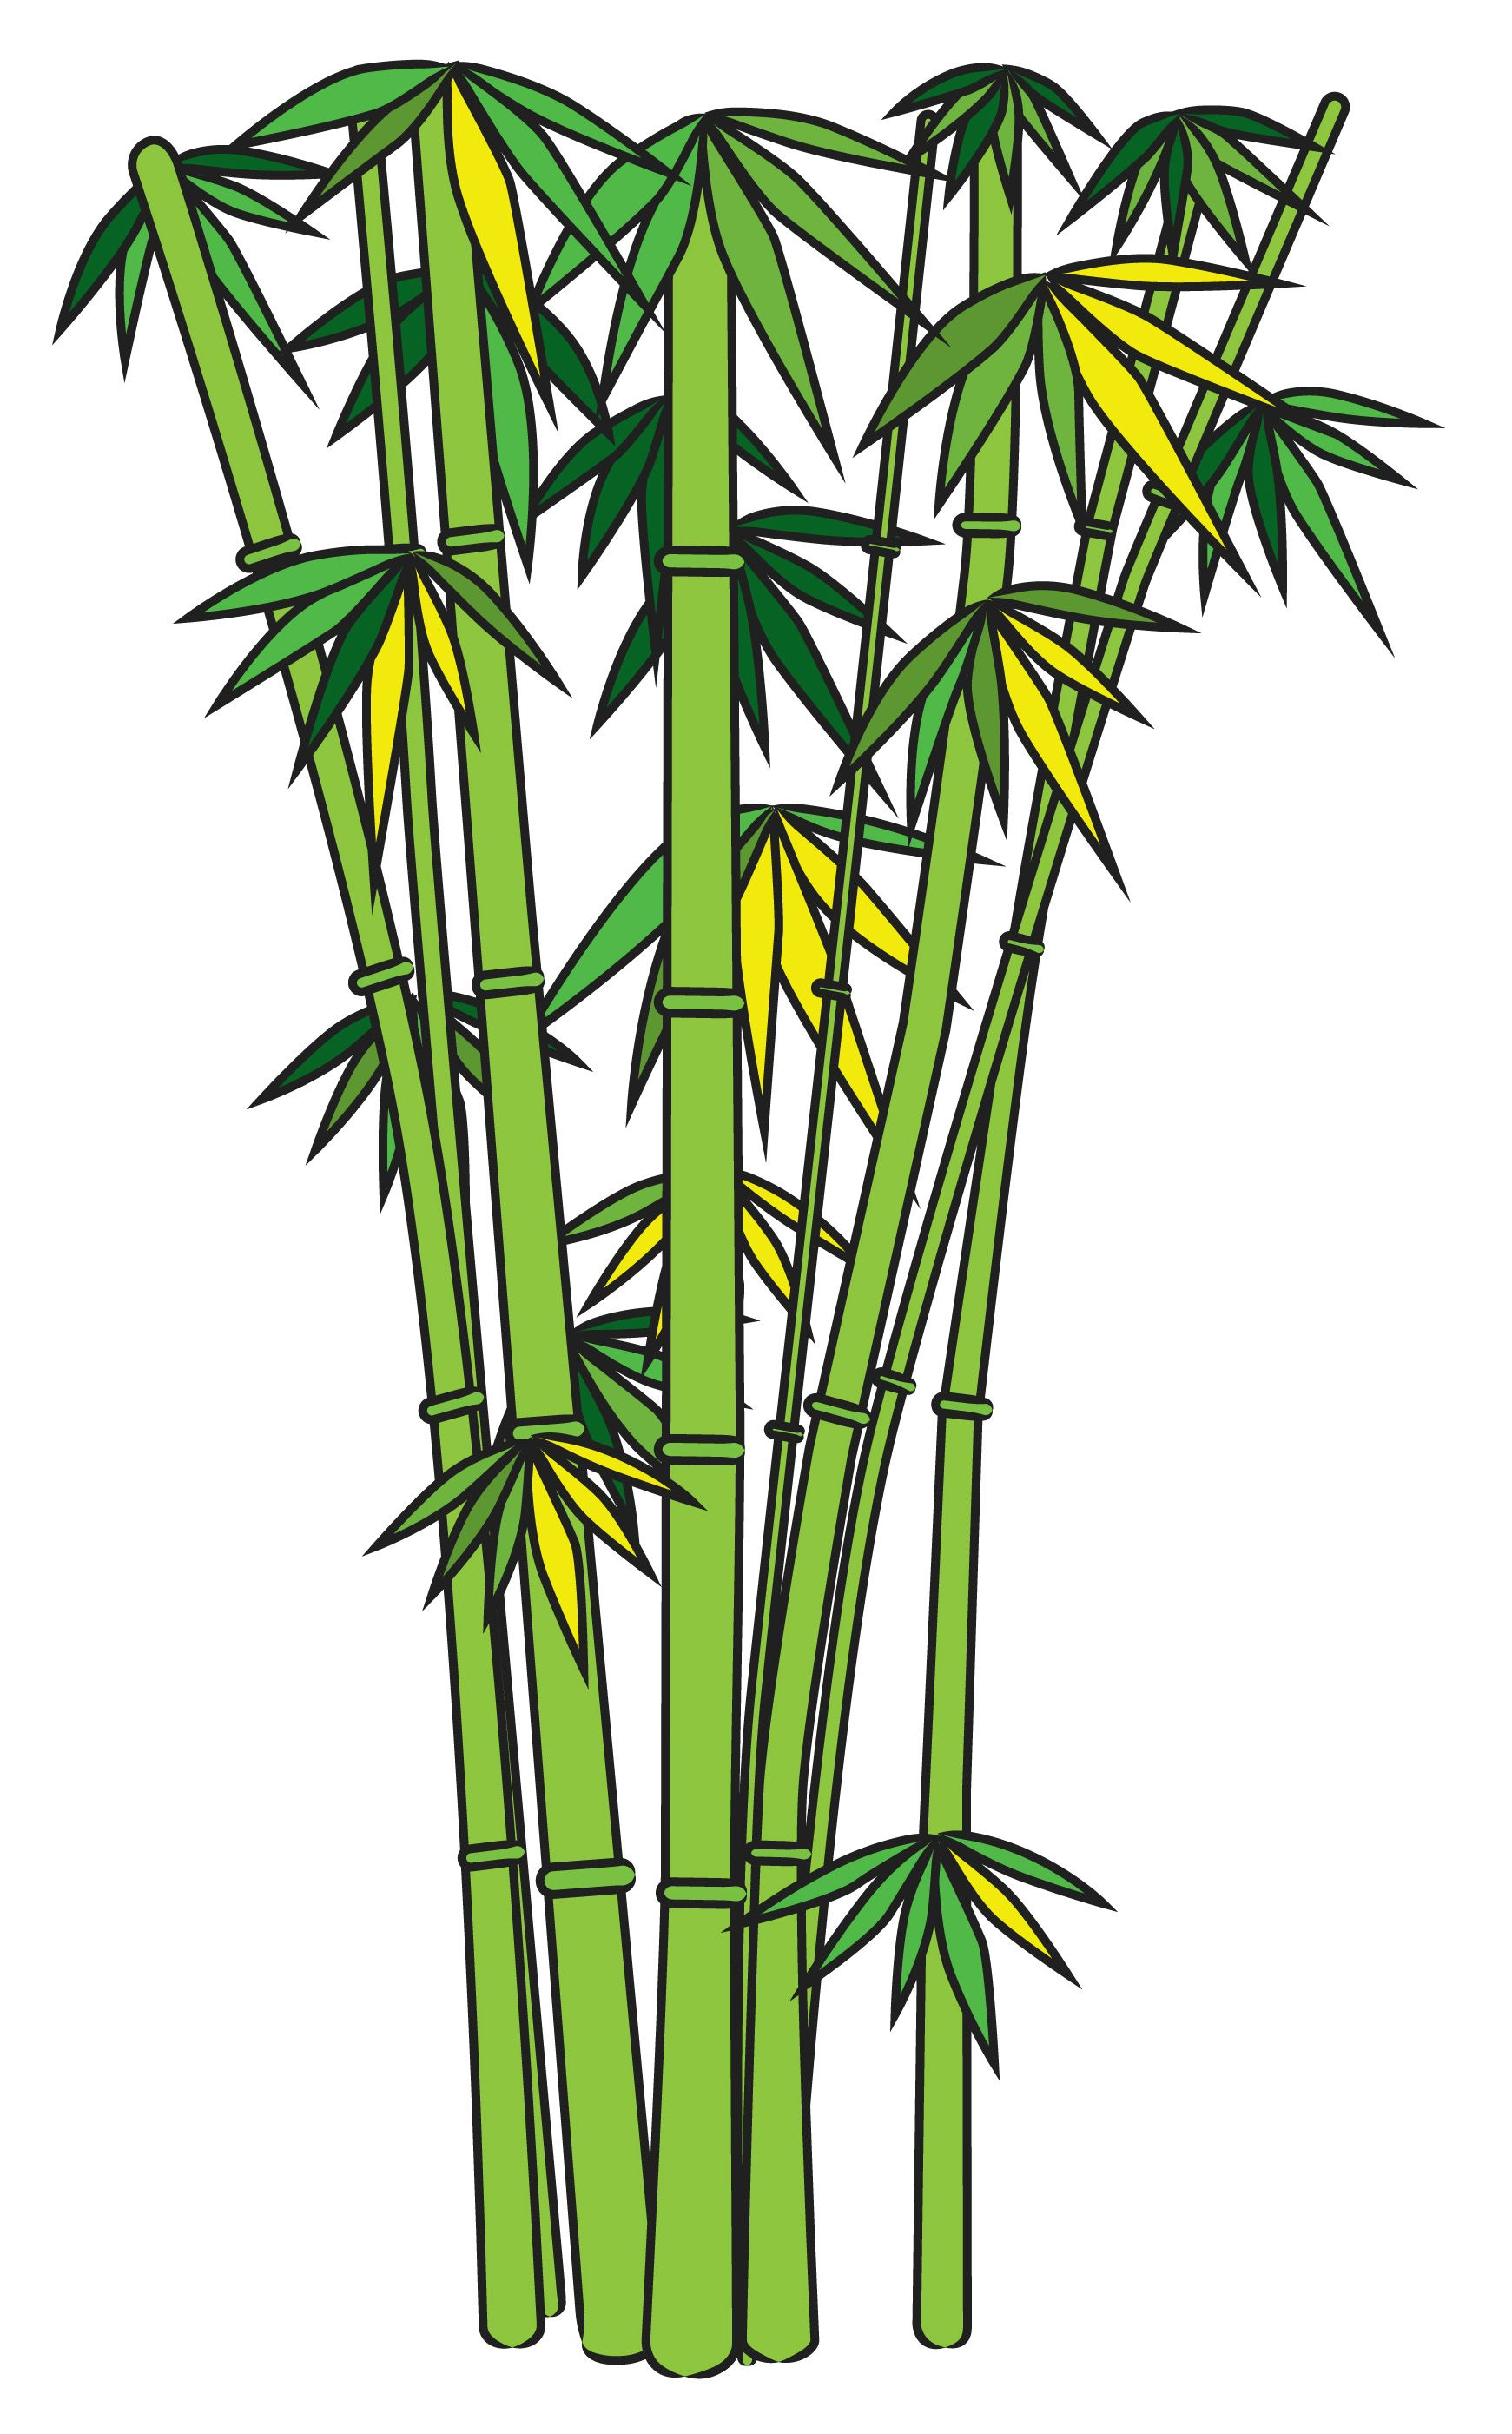 How To Draw Bamboo Tree Drawings Pencil Bamboo Drawing Bamboo Art